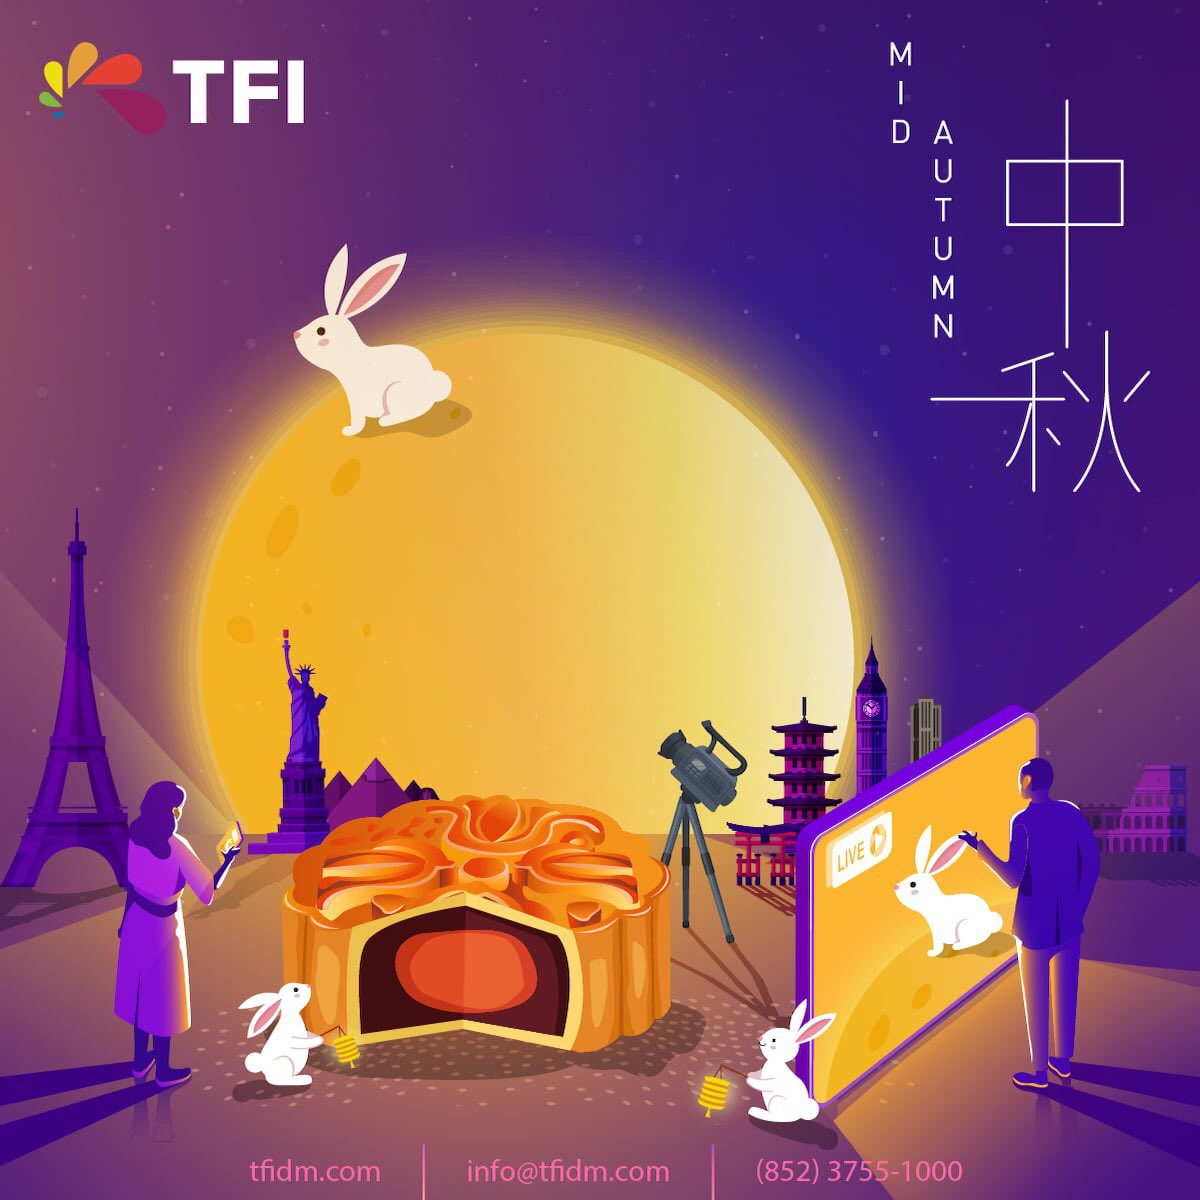 TFI wishes you a blissful Mid-Autumn Festival with joy and happiness!  About HERMESLive: https://t.co/qUGKR6vt95 #天開: https://t.co/k2ua6gAQHD #tfidm #tfi #live #HERMESLive #LiveEncoder #VideoTechnology https://t.co/keXWjFYswr